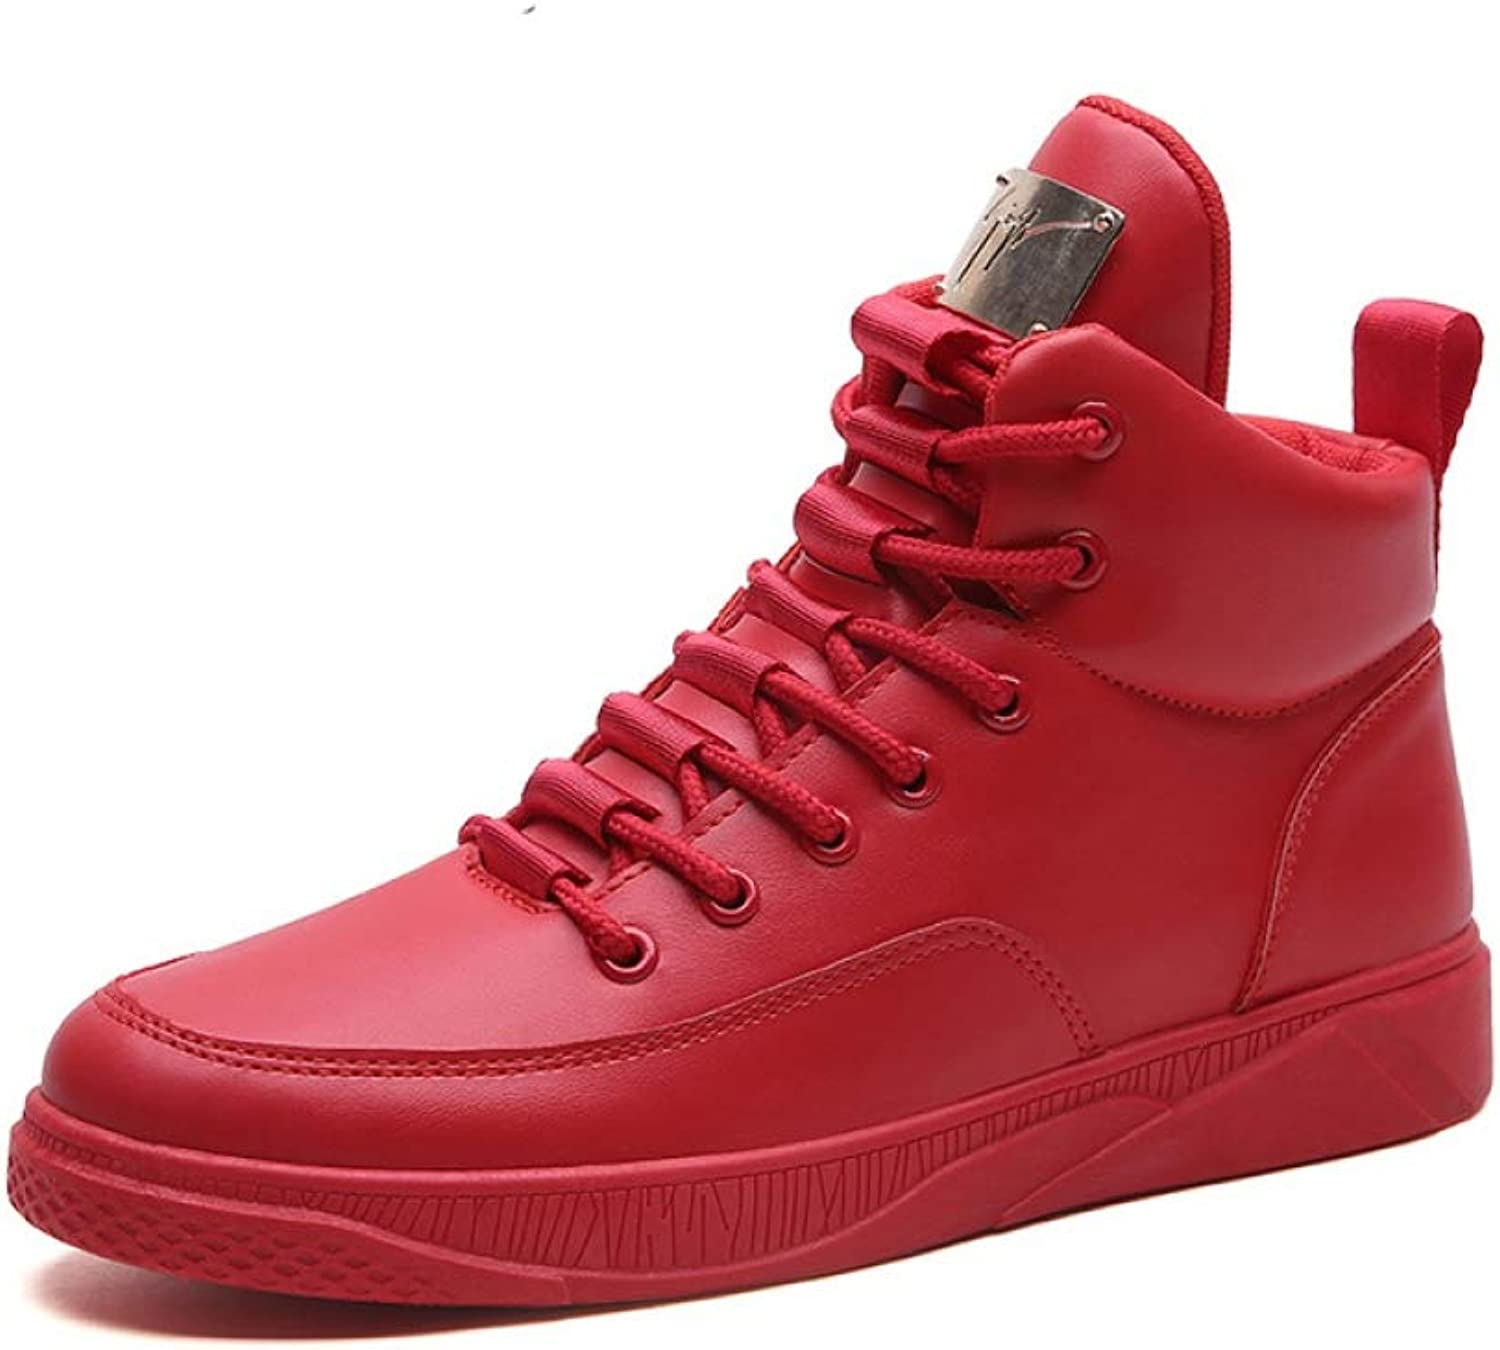 T-JULY Fashion Breathable Canvas High Top shoes Lace Up Rubber Sole PU Leather Trainers Boots shoes Winter Casual